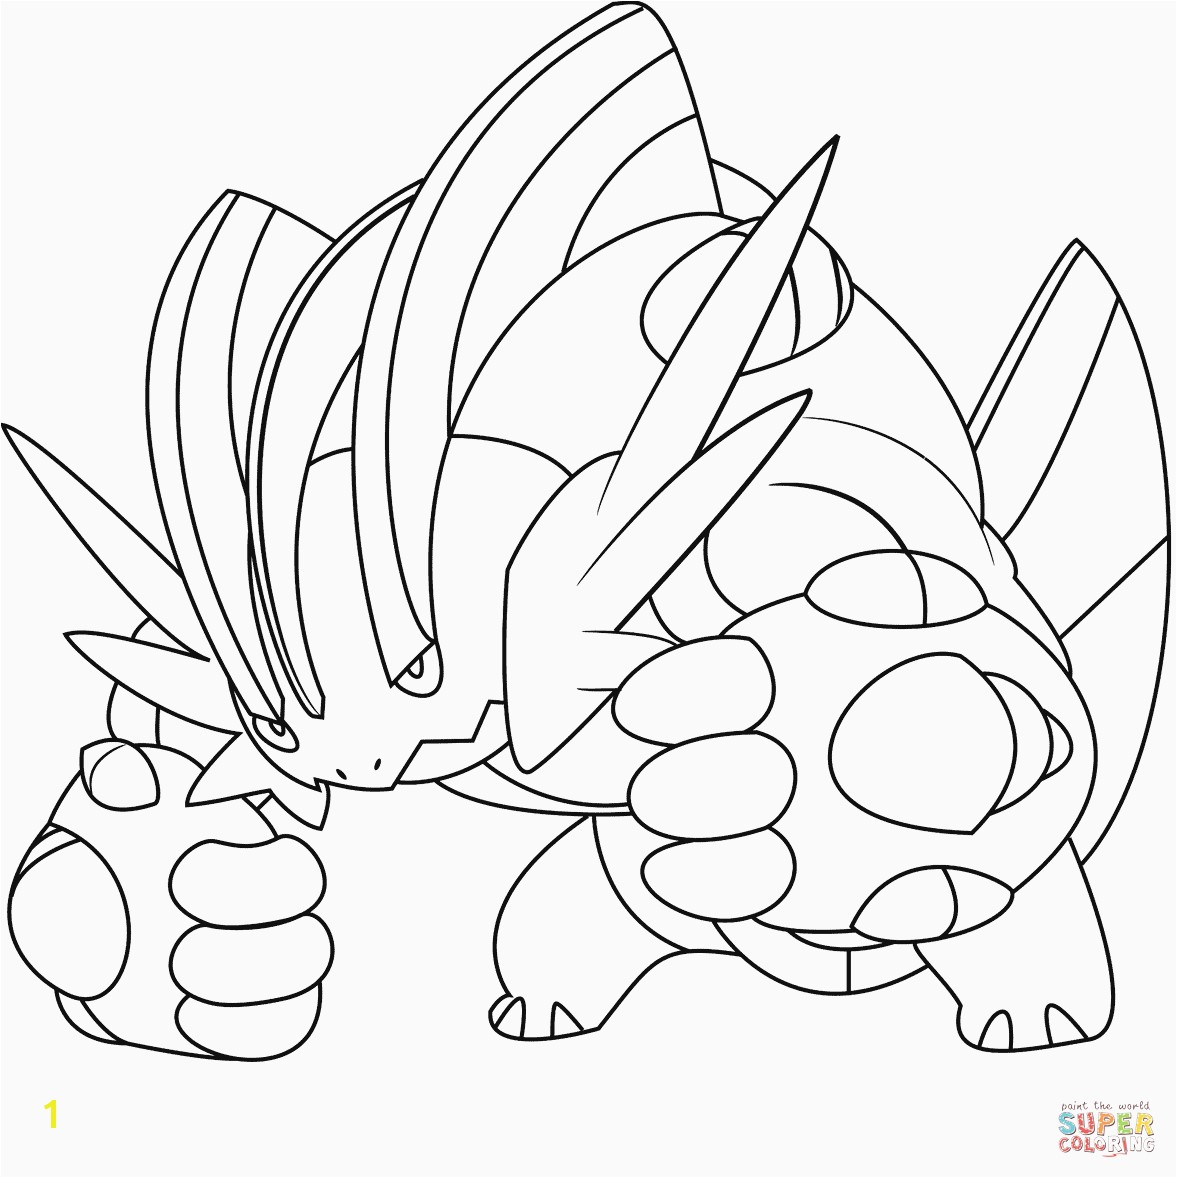 Pokemon Coloring Pages to Print Luxury Obsession Blaziken Coloring Page Impressive Design Ideas Pokemon